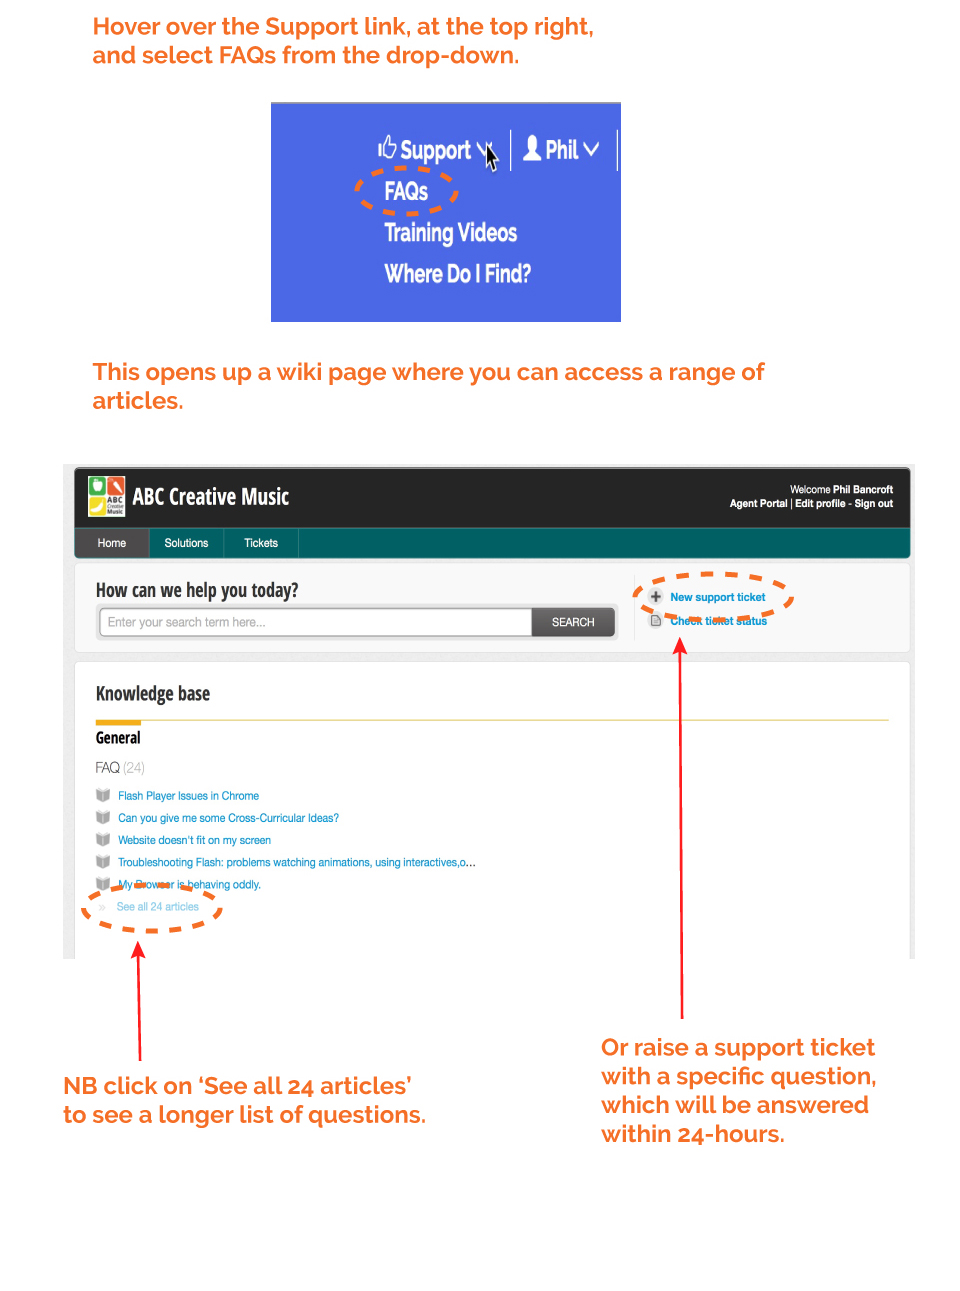 Graphic explaining where to find FAQs and raise a support ticket